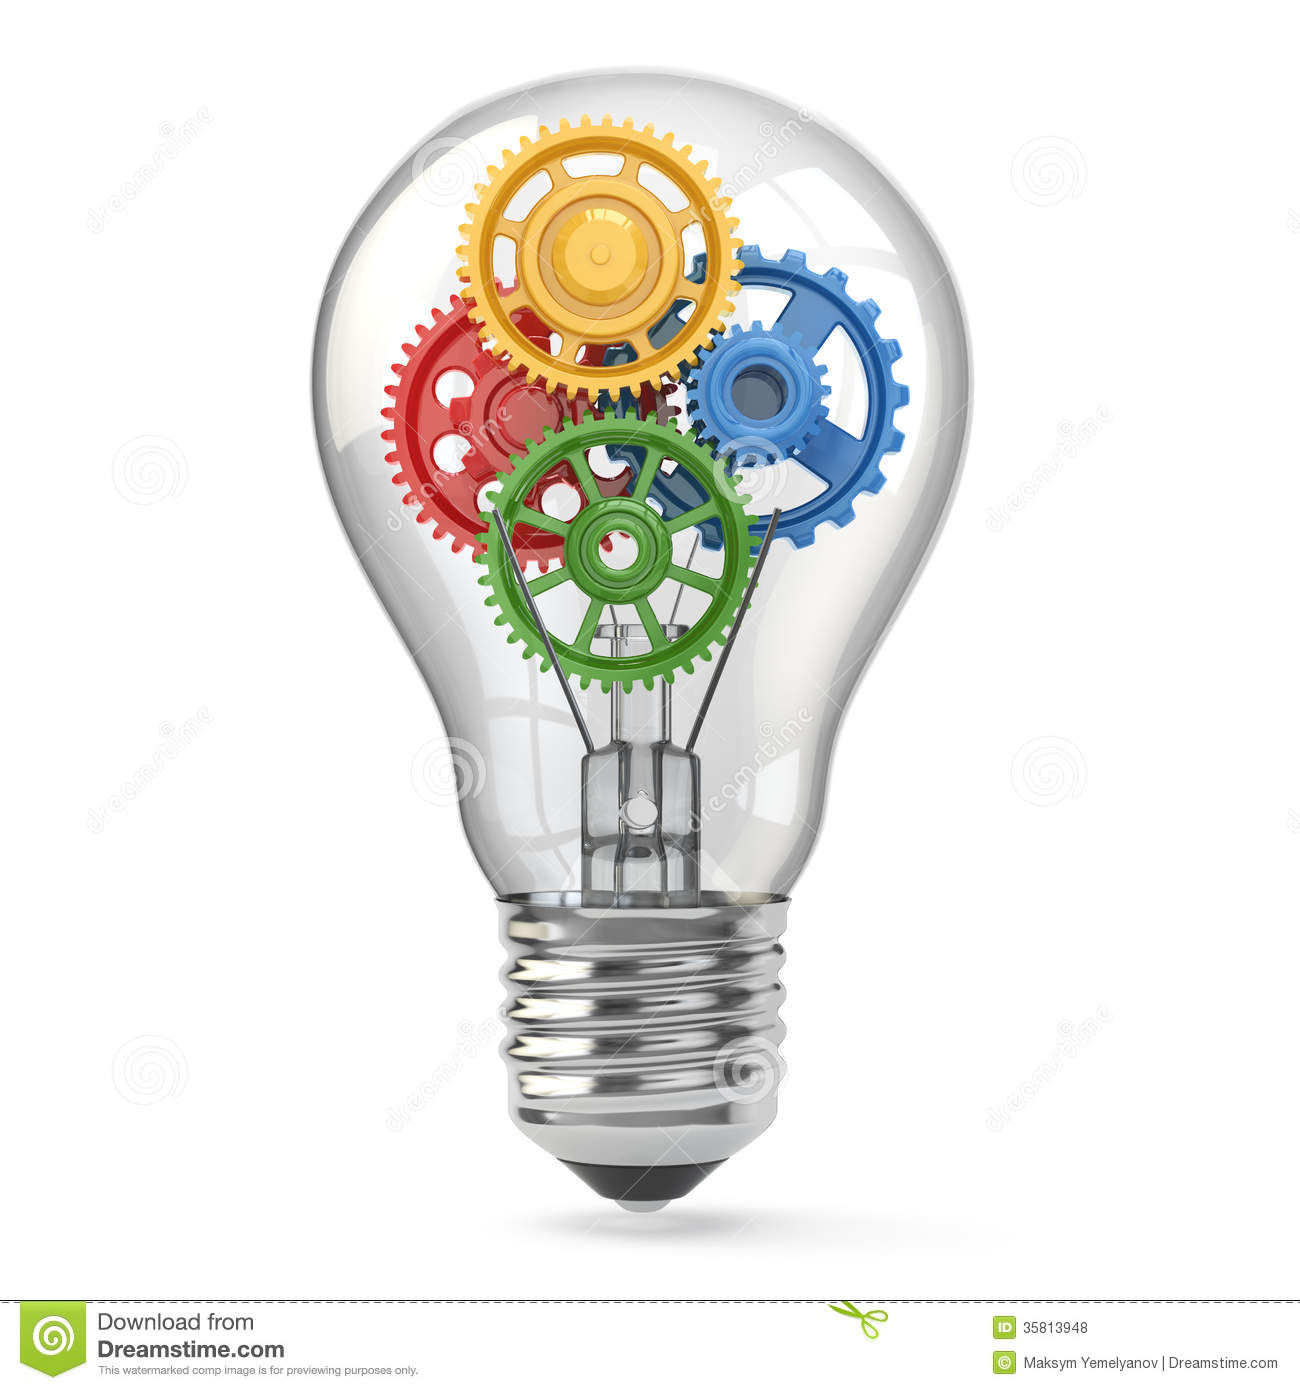 Logica Cgi in addition Ut Austin Offers Online Master S In Mechanical Engineering in addition High Tech Designs Headers moreover Template496 likewise Royalty Free Stock Images Solar Panel Light Bulb Inside Eco Image40091989. on electrical concepts